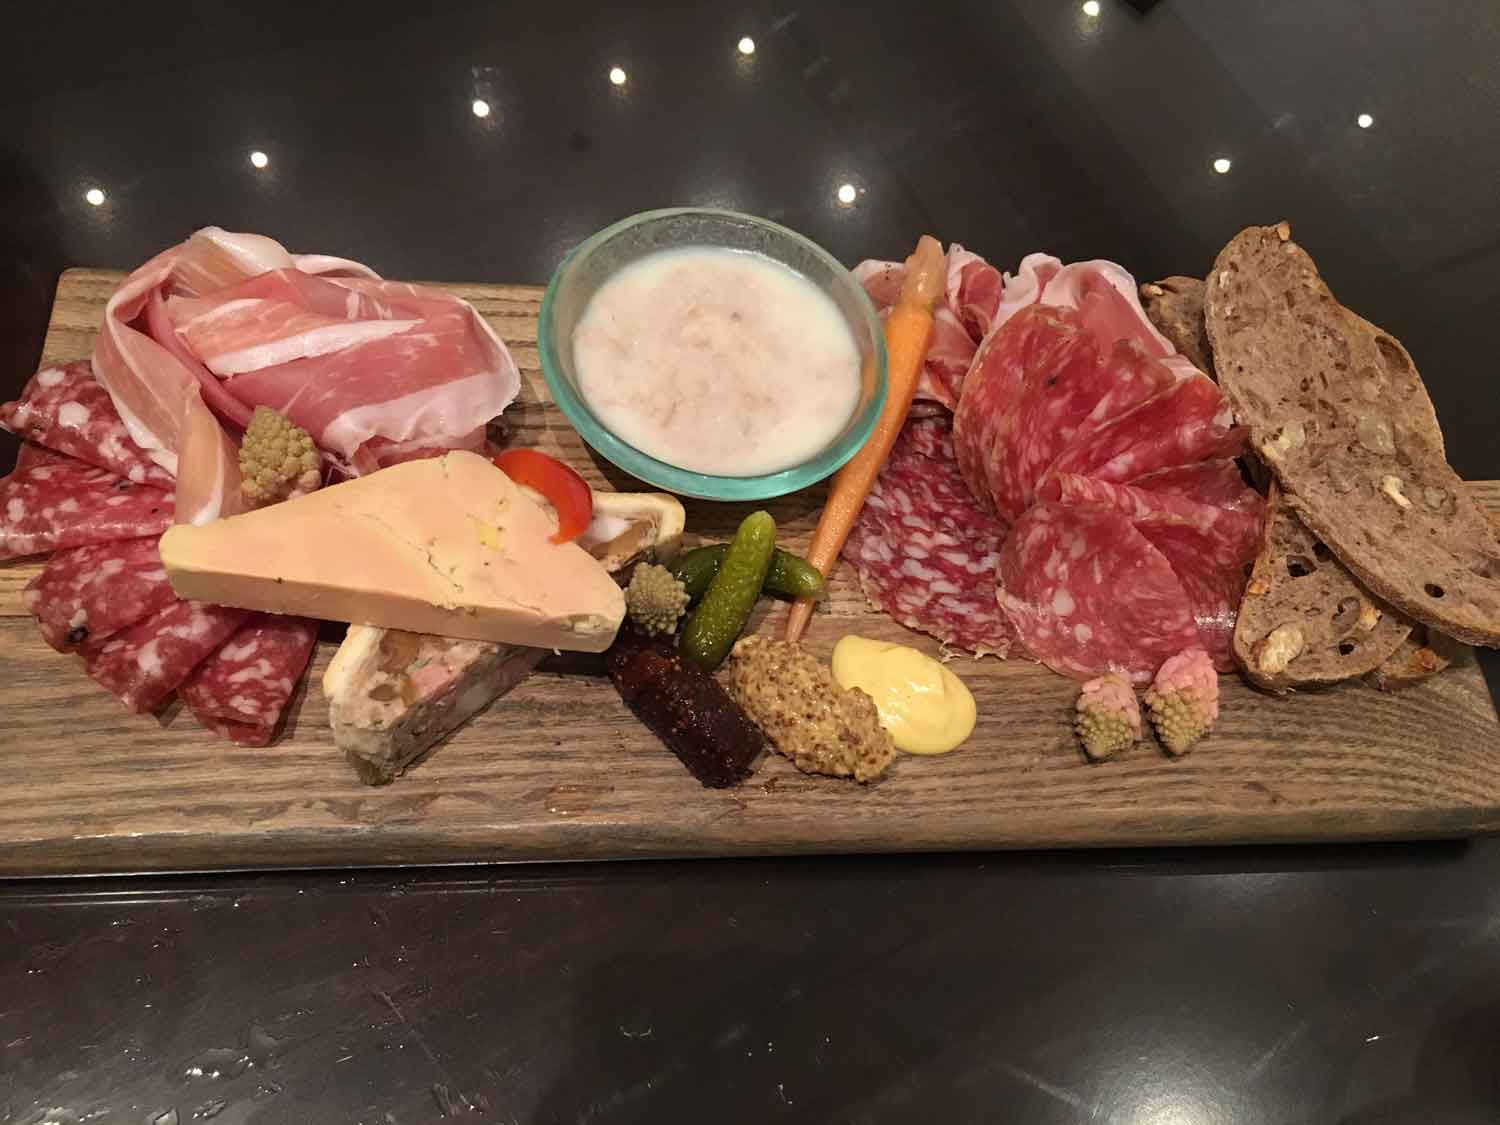 Brassiere Macau cured meat platter